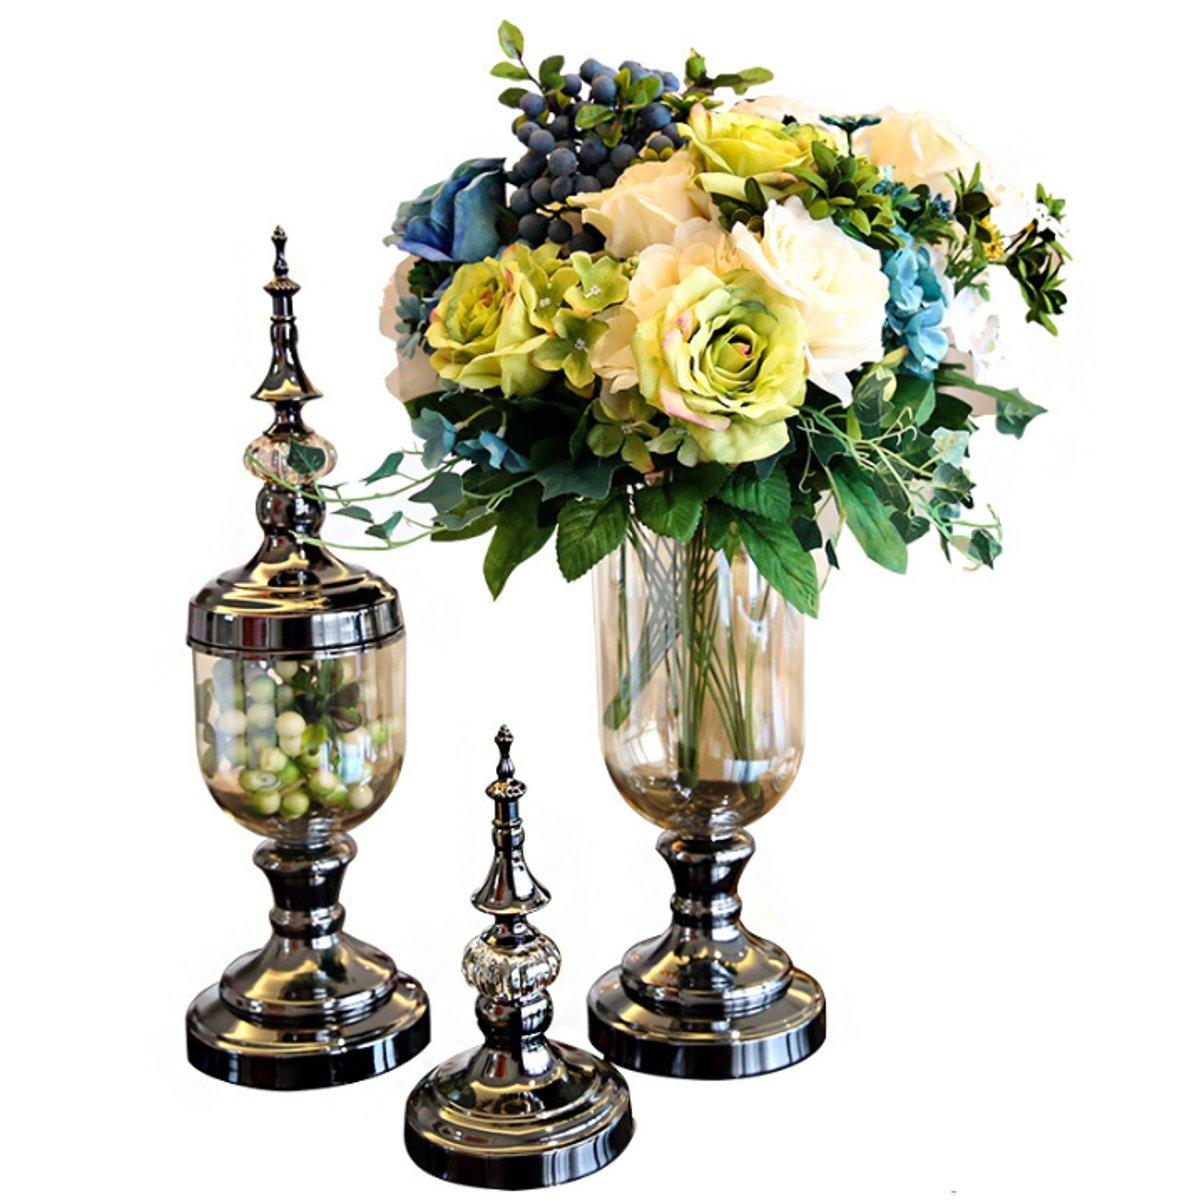 European Glass Flower Vase Floral Holder Wedding Party Home Office Decorations фото